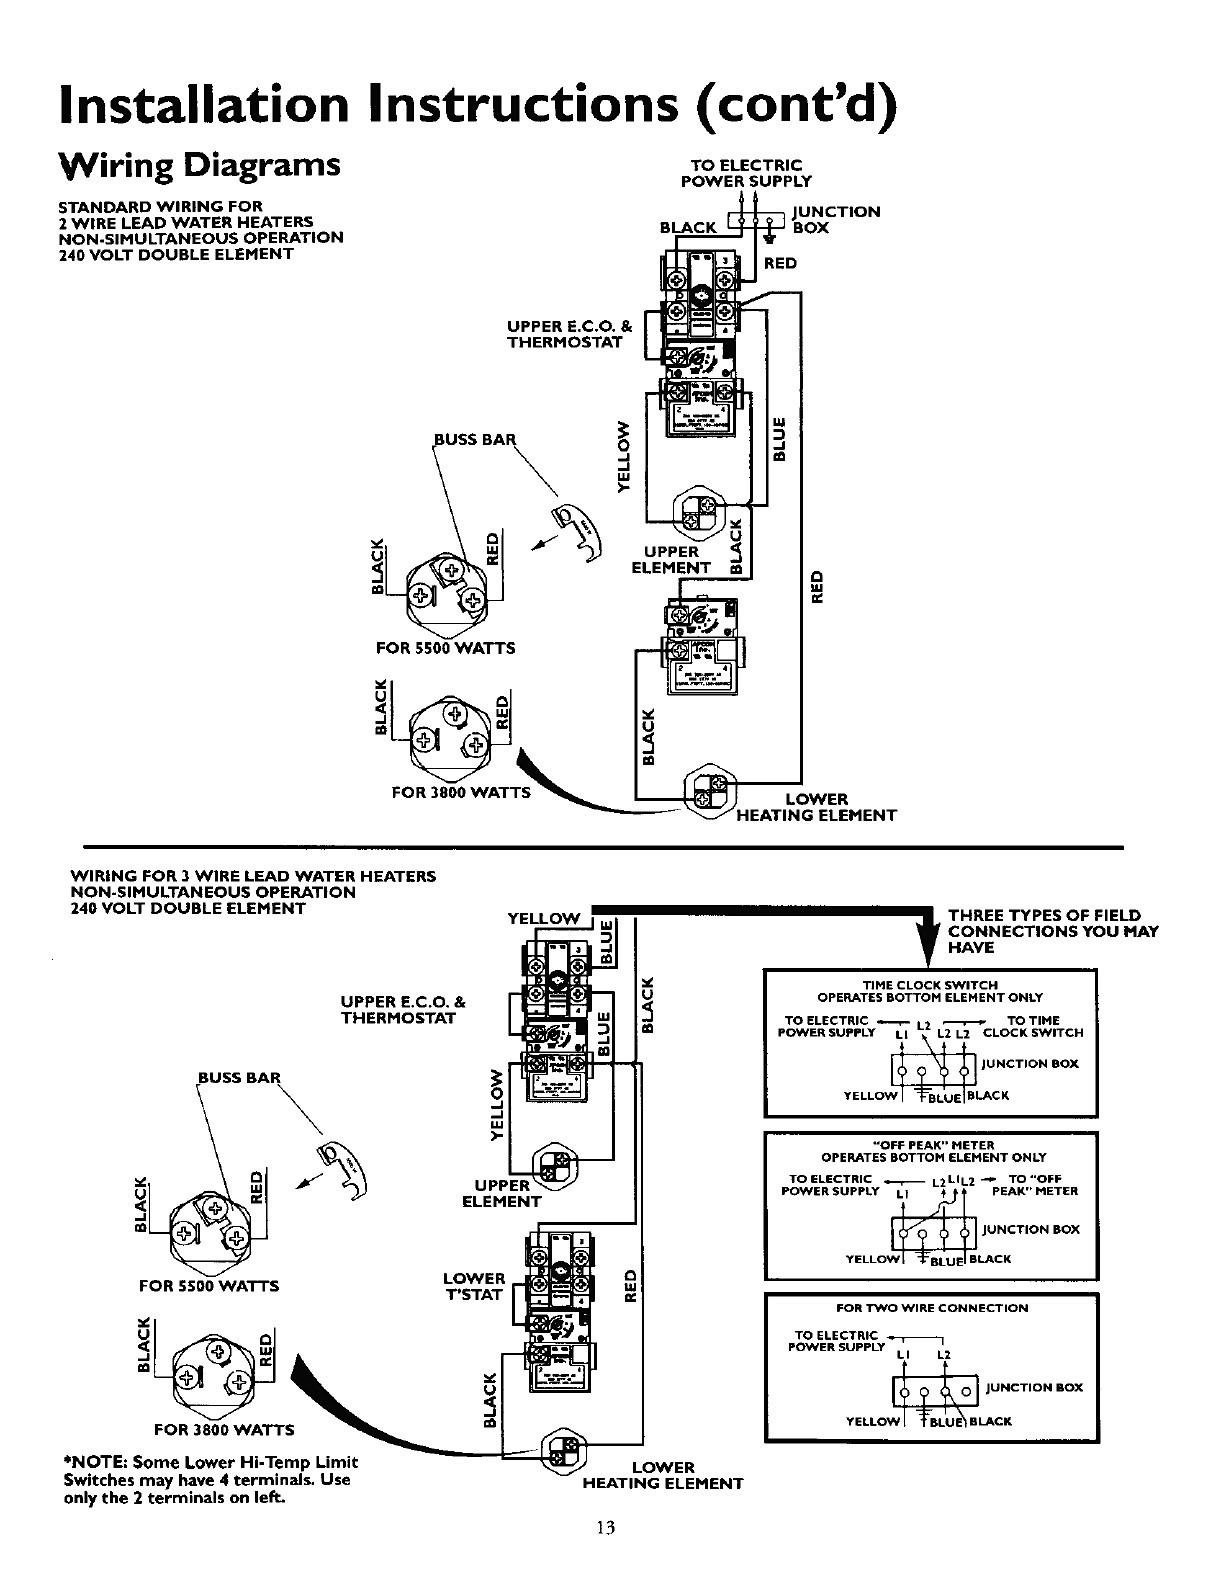 Heat Relay Wiring Diagram Wiring Diagram Database